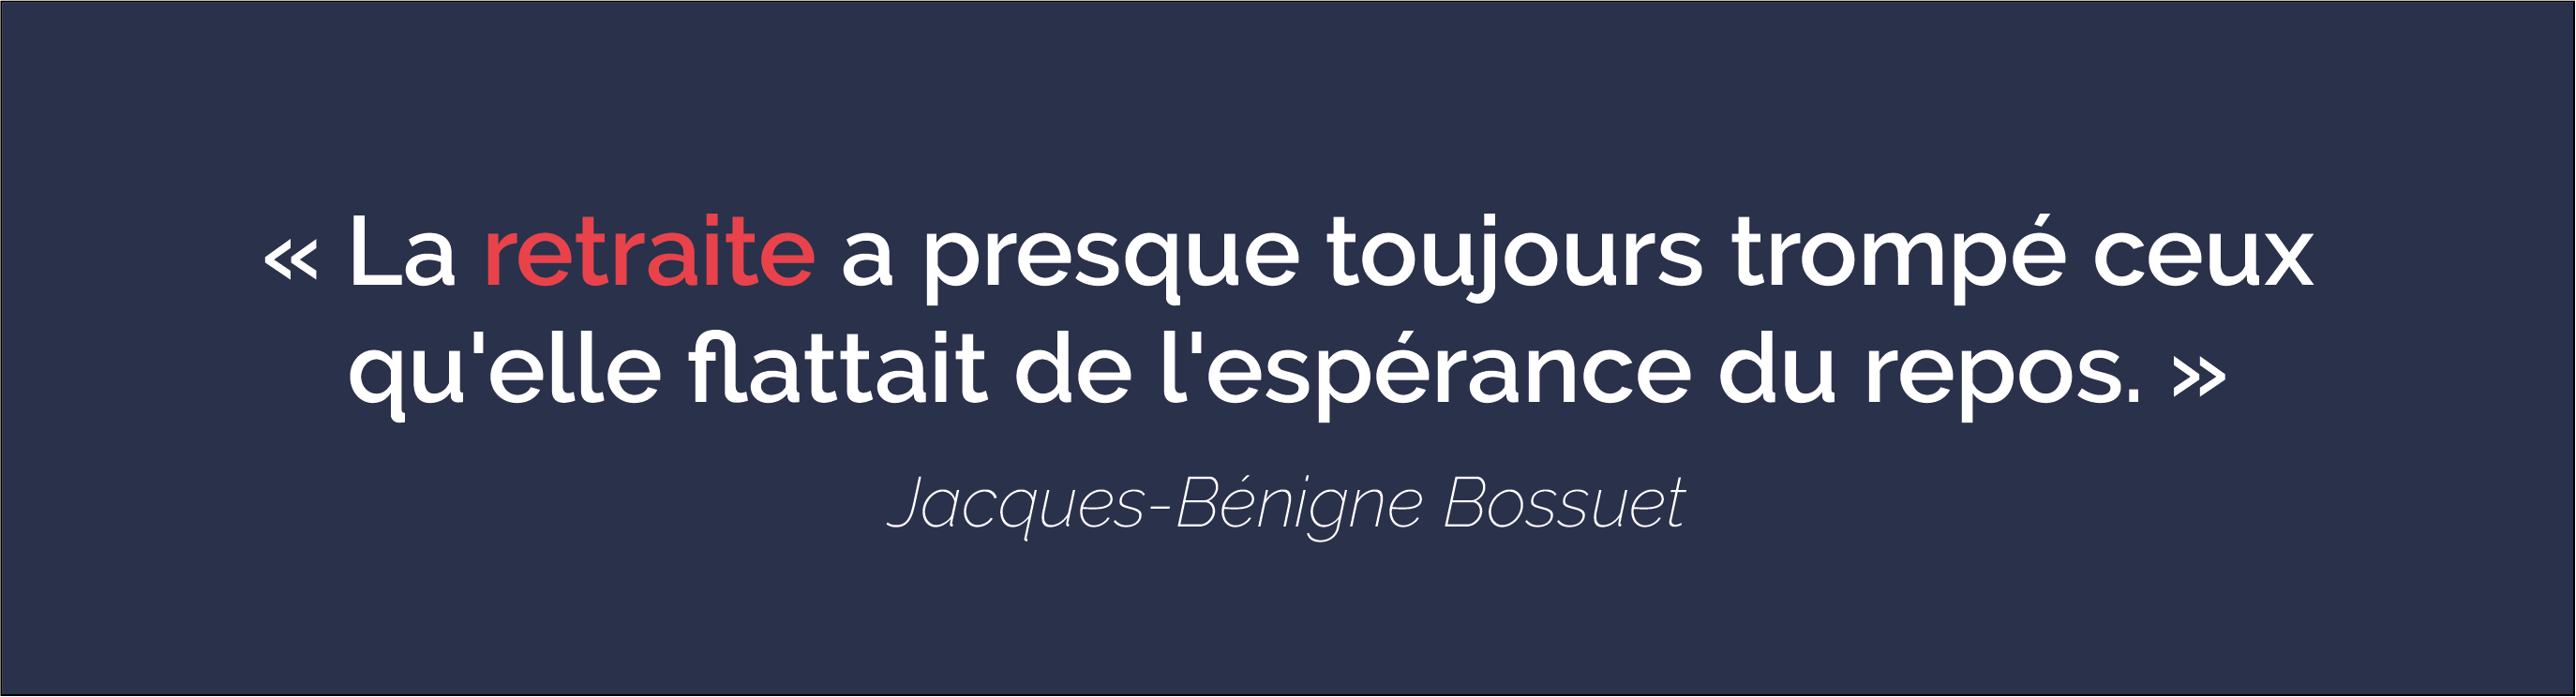 citation retraite bossuet